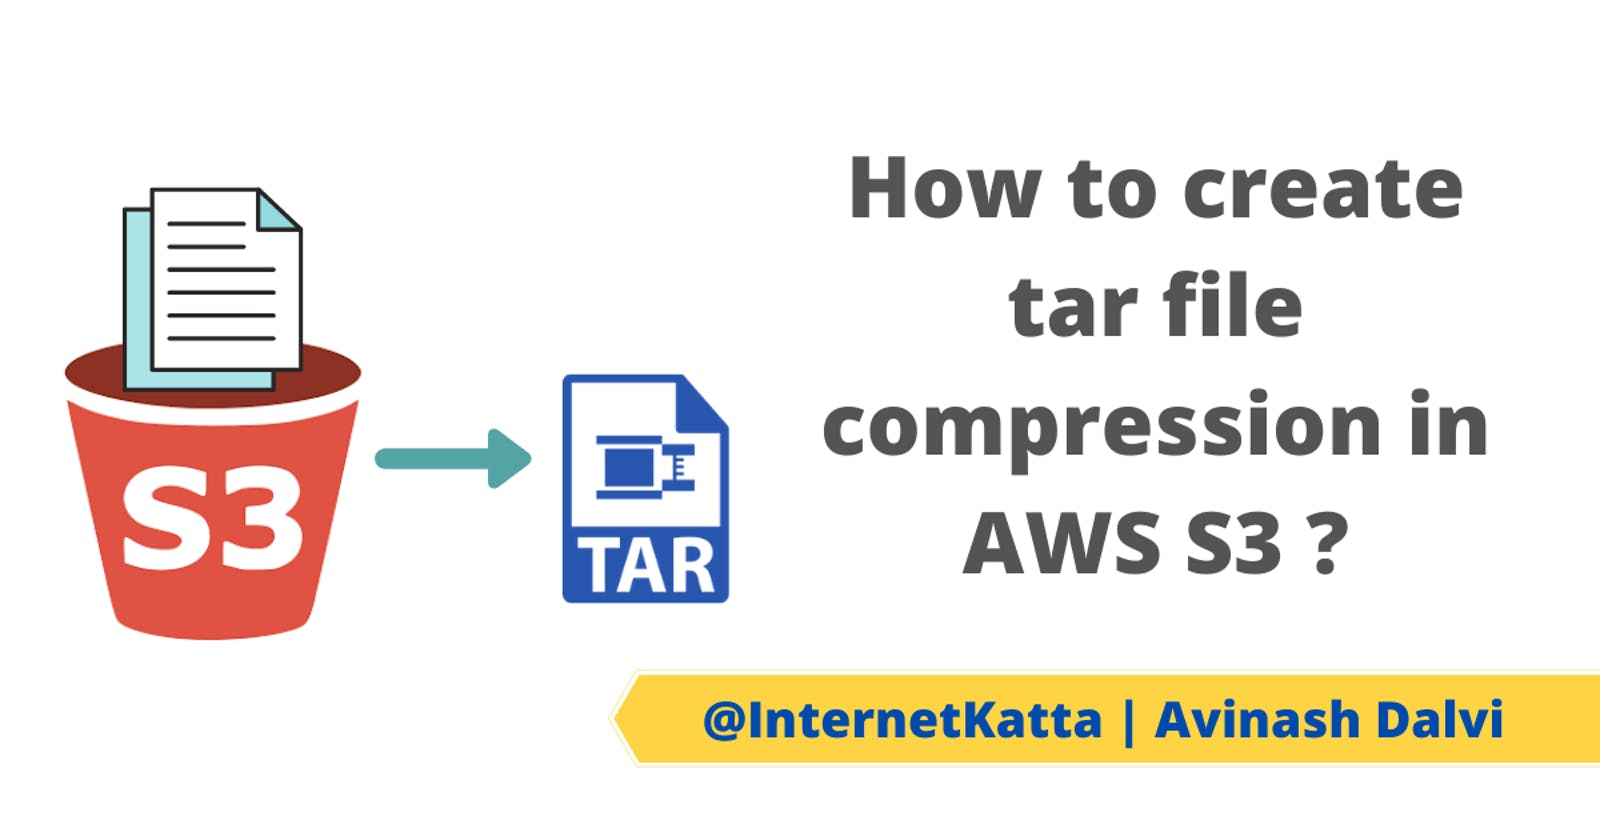 How to create tar file compression in AWS S3 ?